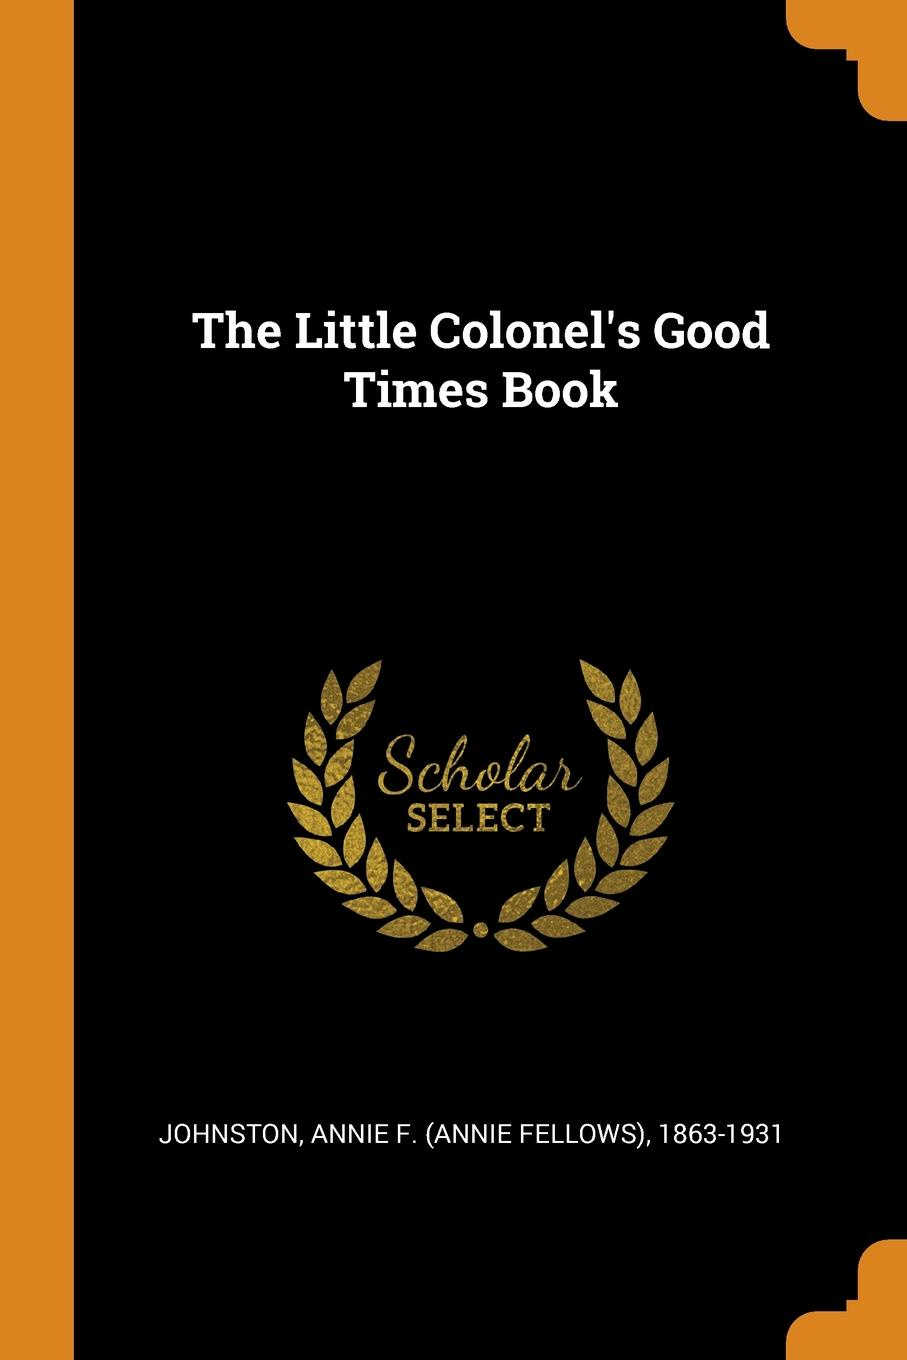 The Little Colonel.s Good Times Book jd mcpherson jd mcpherson let the good times roll